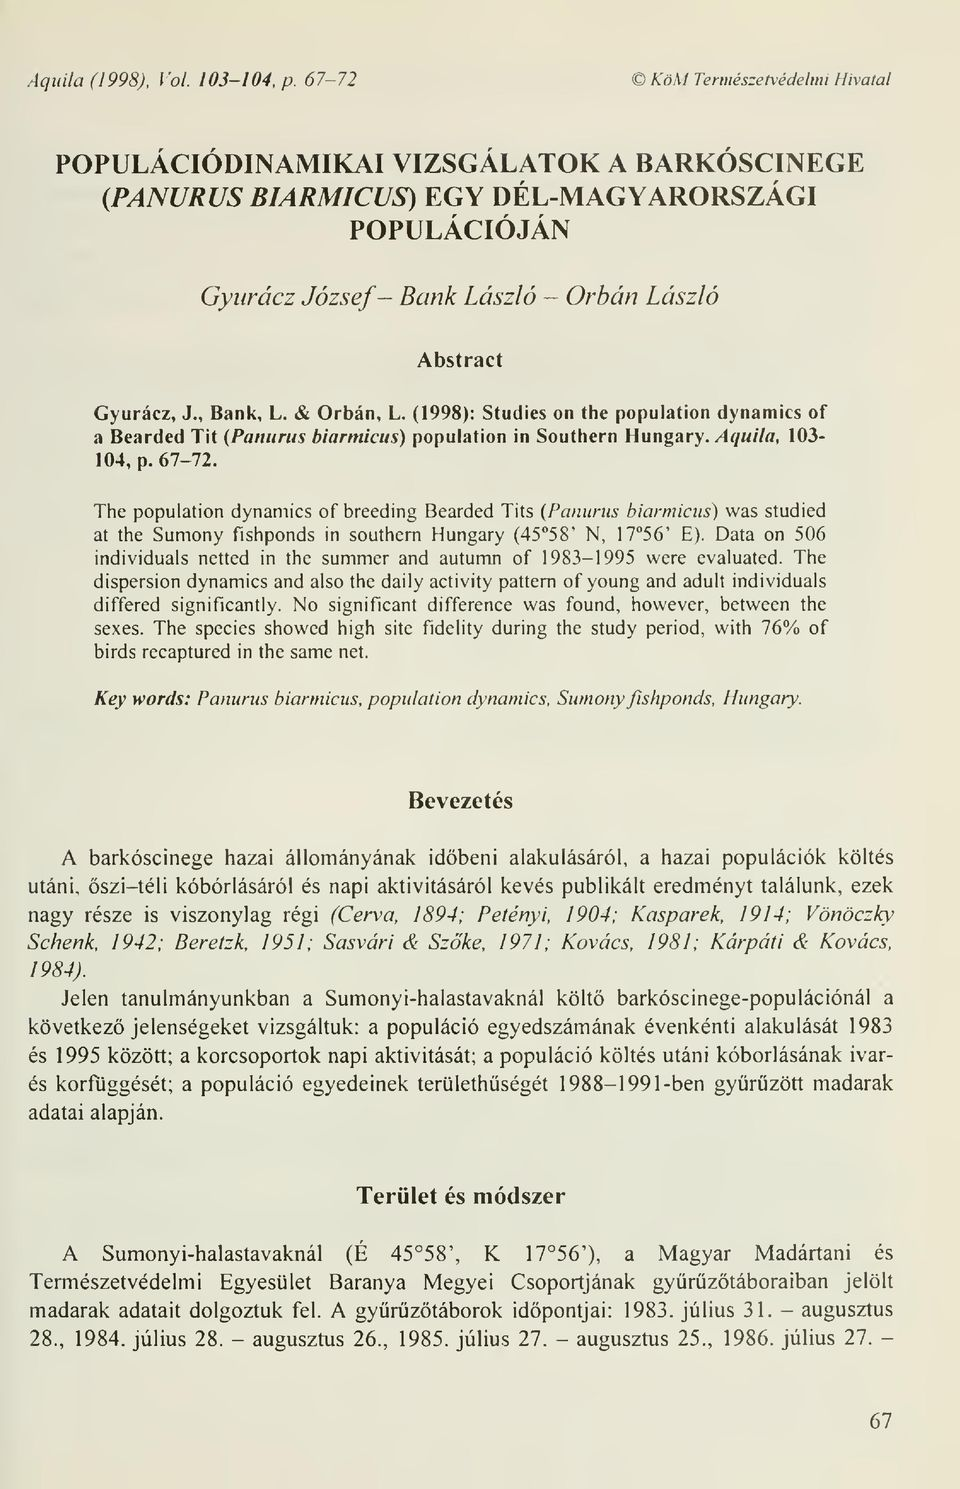 , Bank, L. & Orbán, L. (1998): Studies on the population dynamics of a Bearded Tit (Panurus biarmicus) population in Southern Hungary. Aquila, 103-104, p. 67-72.